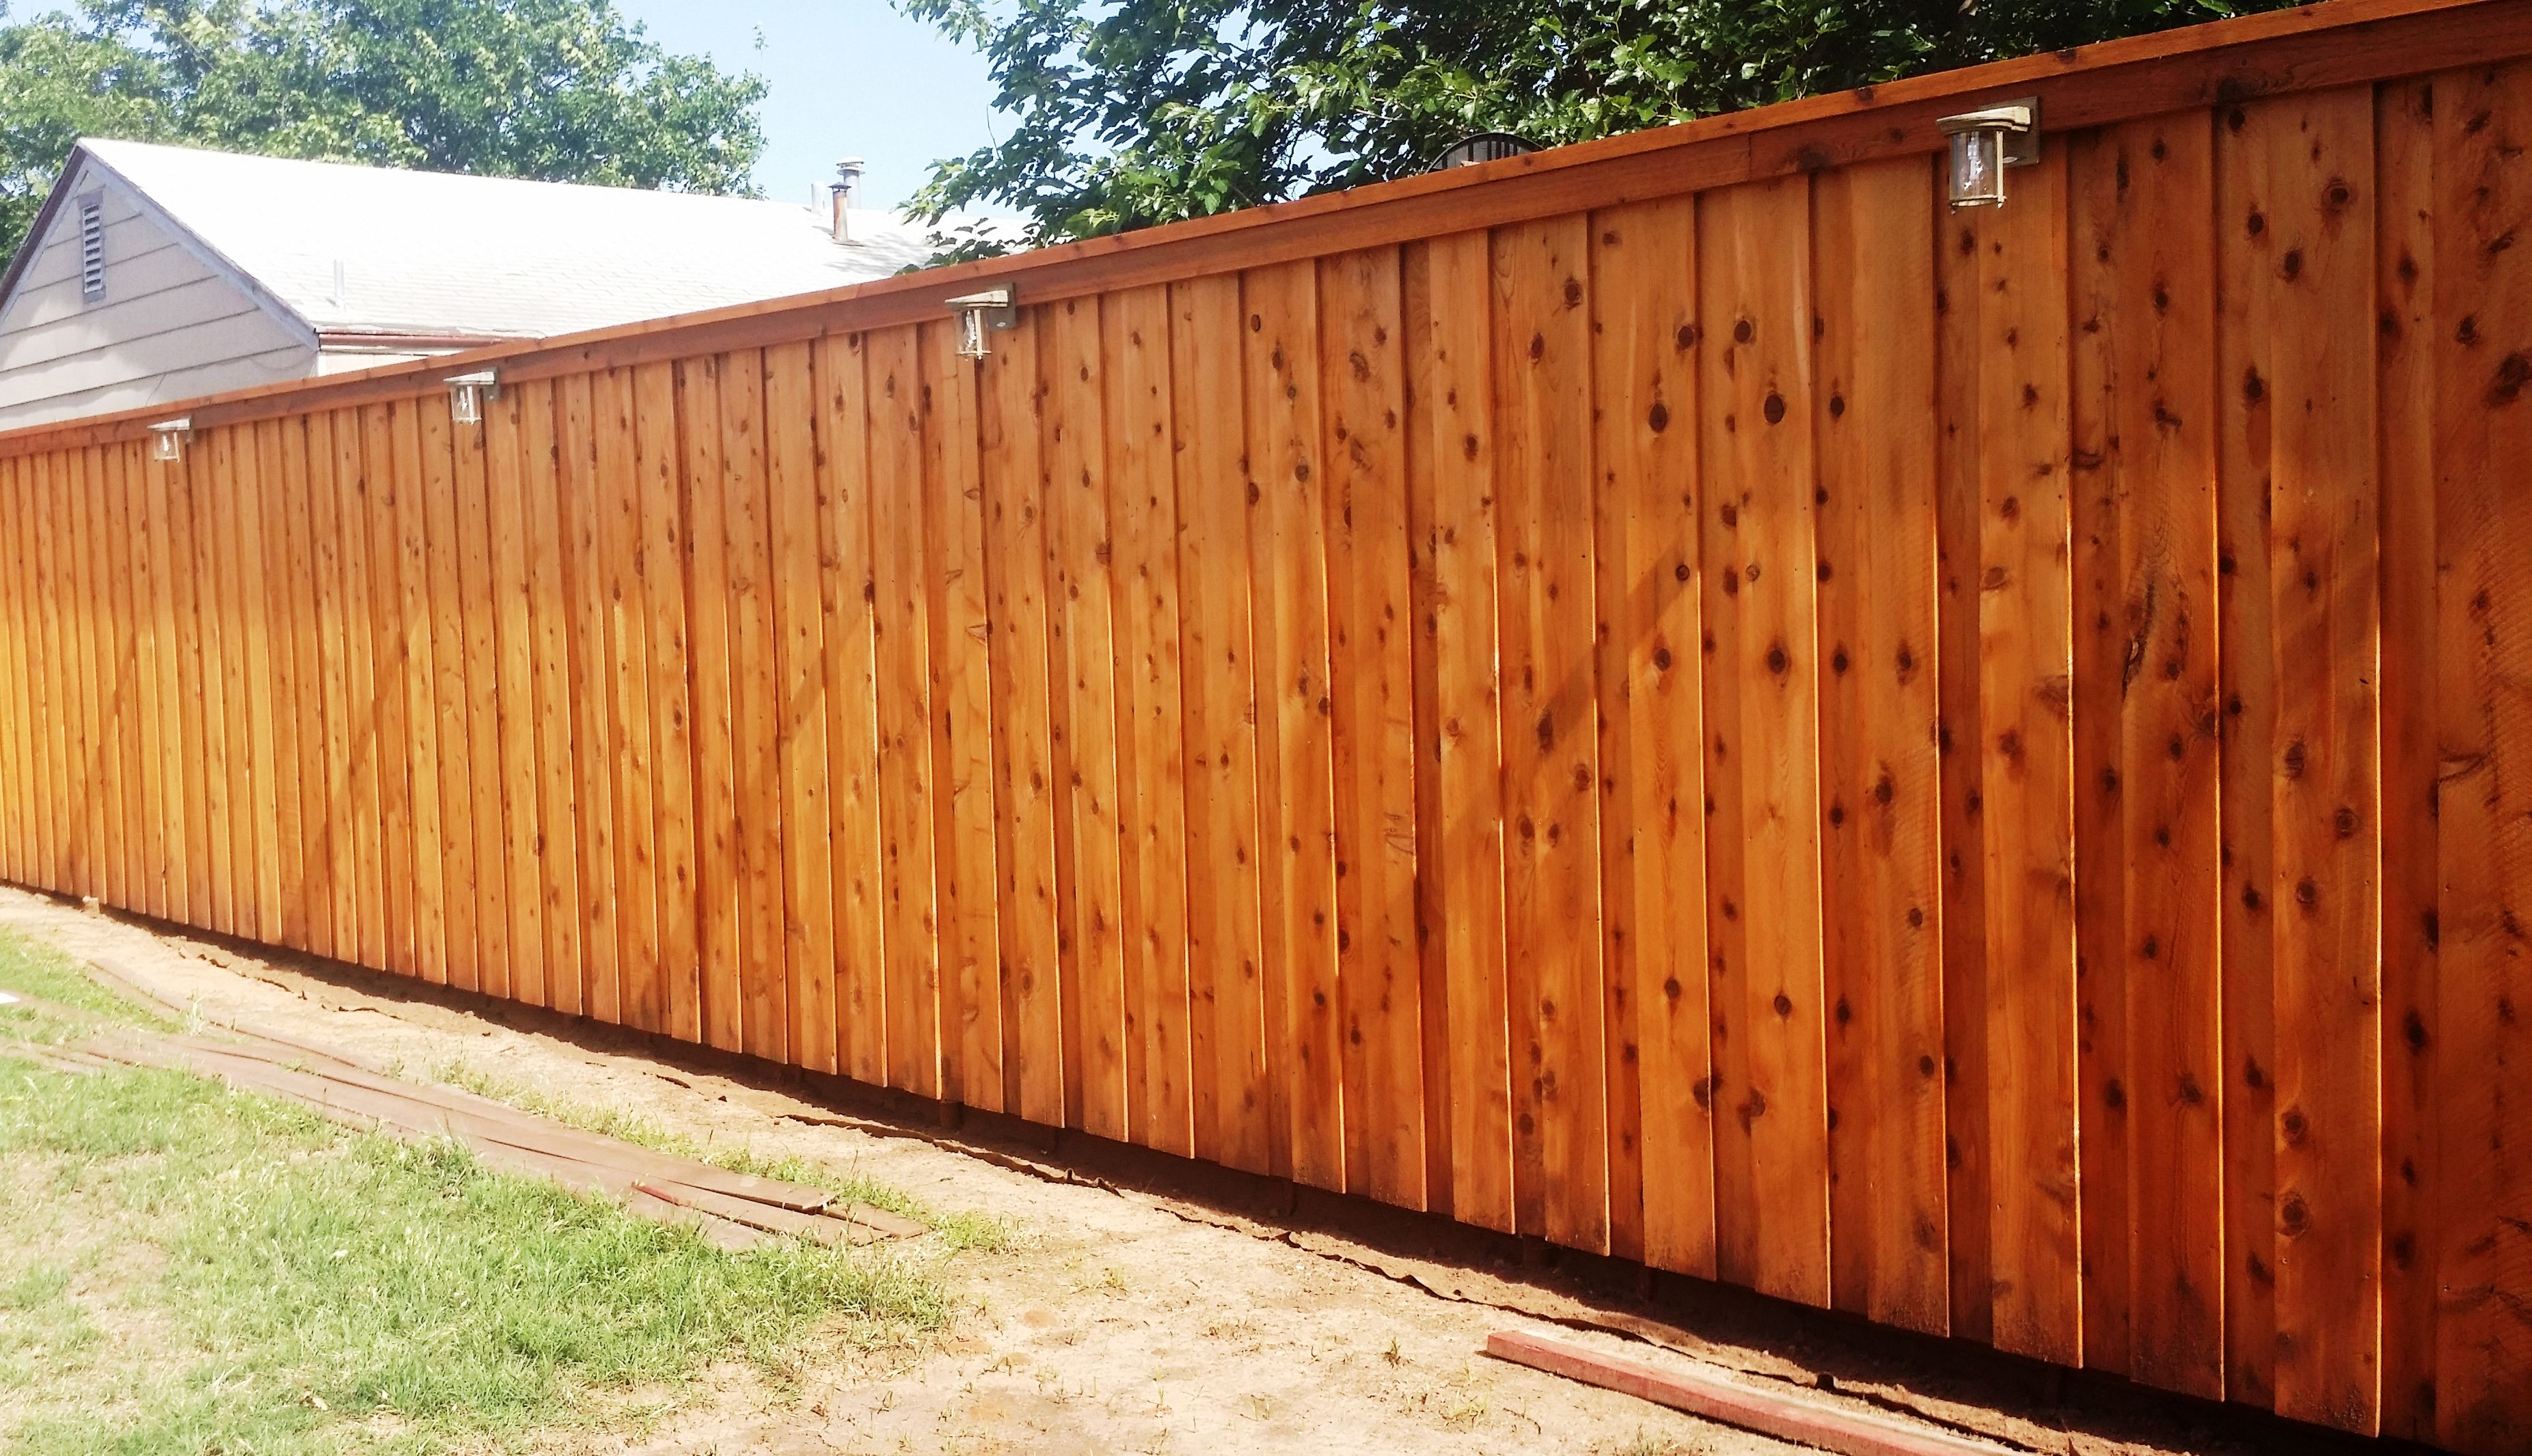 We Love Wood Defender Cedar Tone Fence Stain It Looks Amazing On Our 1 X8 X8 1 Grade Cedar Fence Board On Board With A Cap Cedar Fence Fence Fence Stain